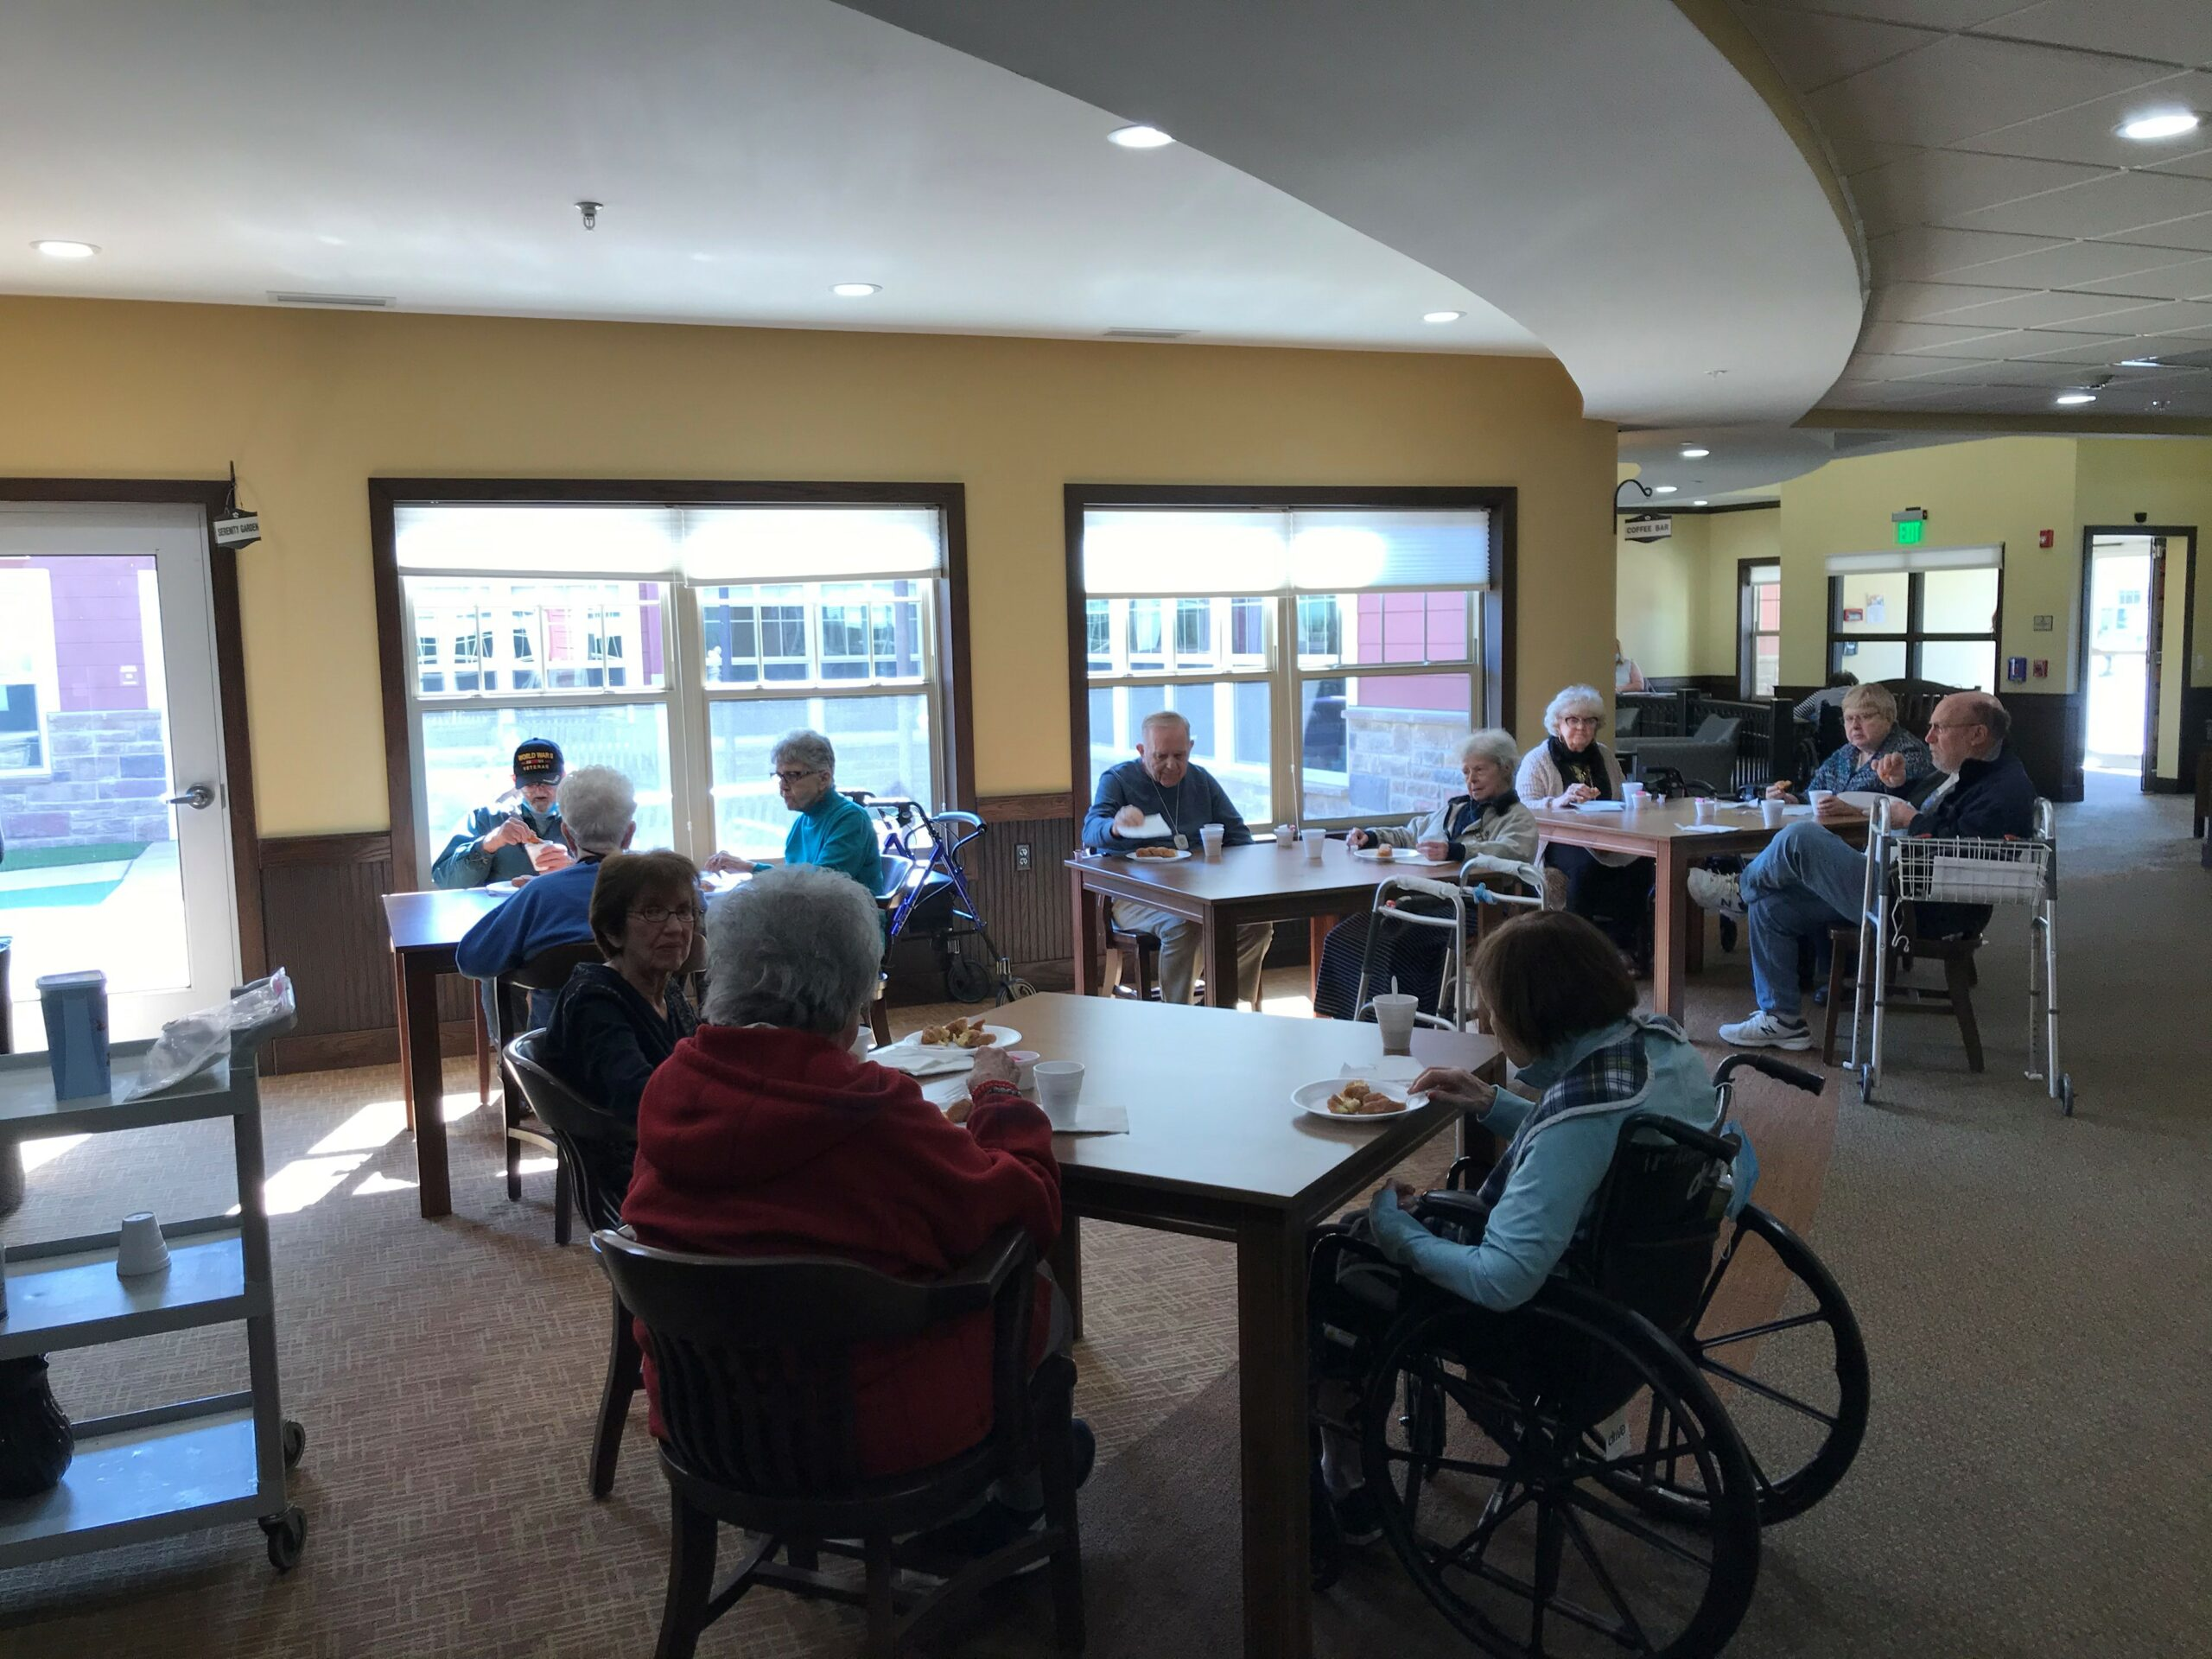 Memory Care residents enjoying tasty pastries, coffee and conversation